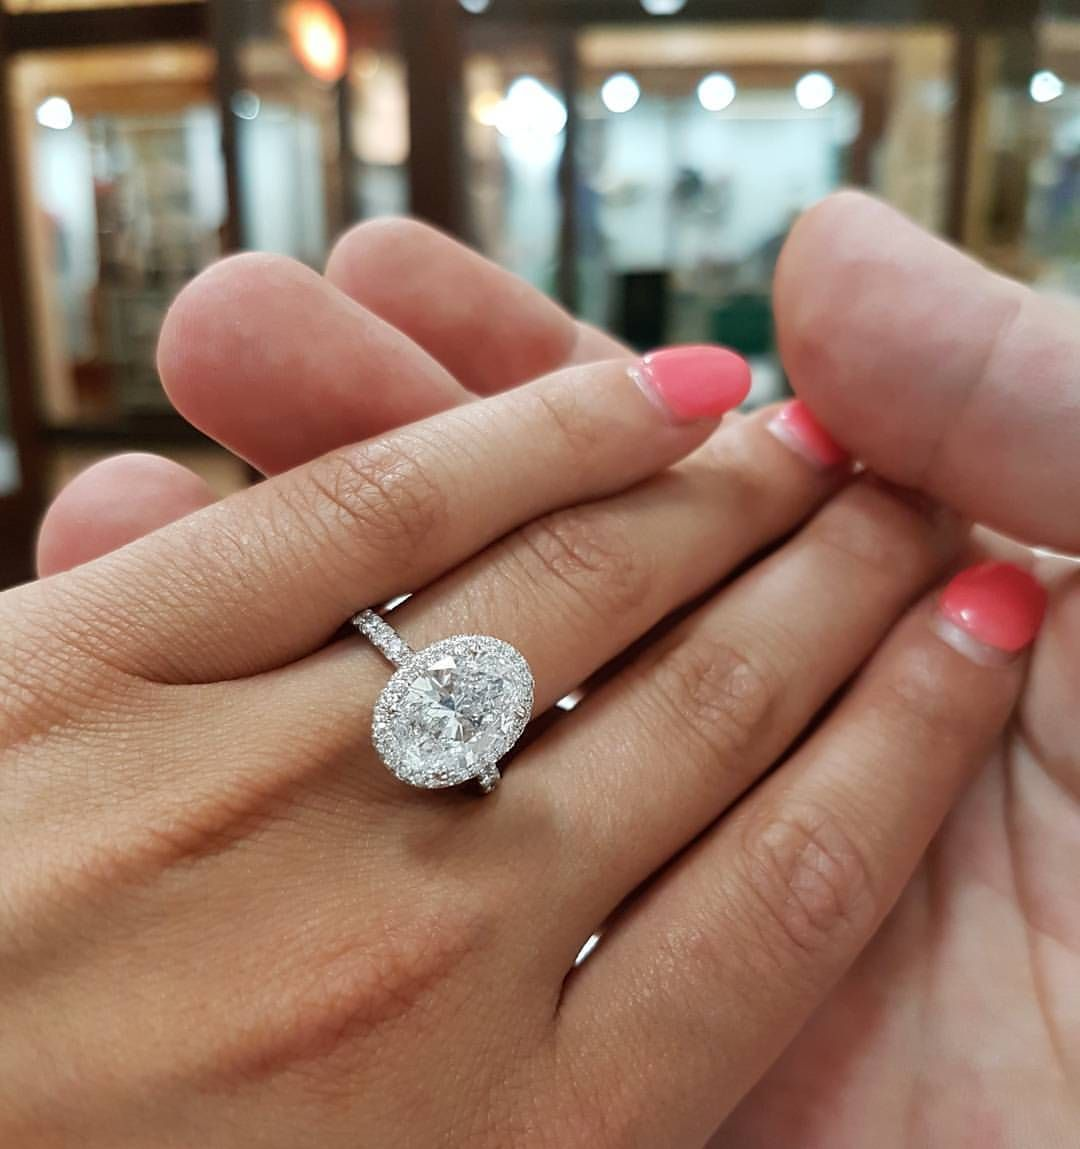 Pin By Kaylee Justice On Smh Engagement Rings Diamond